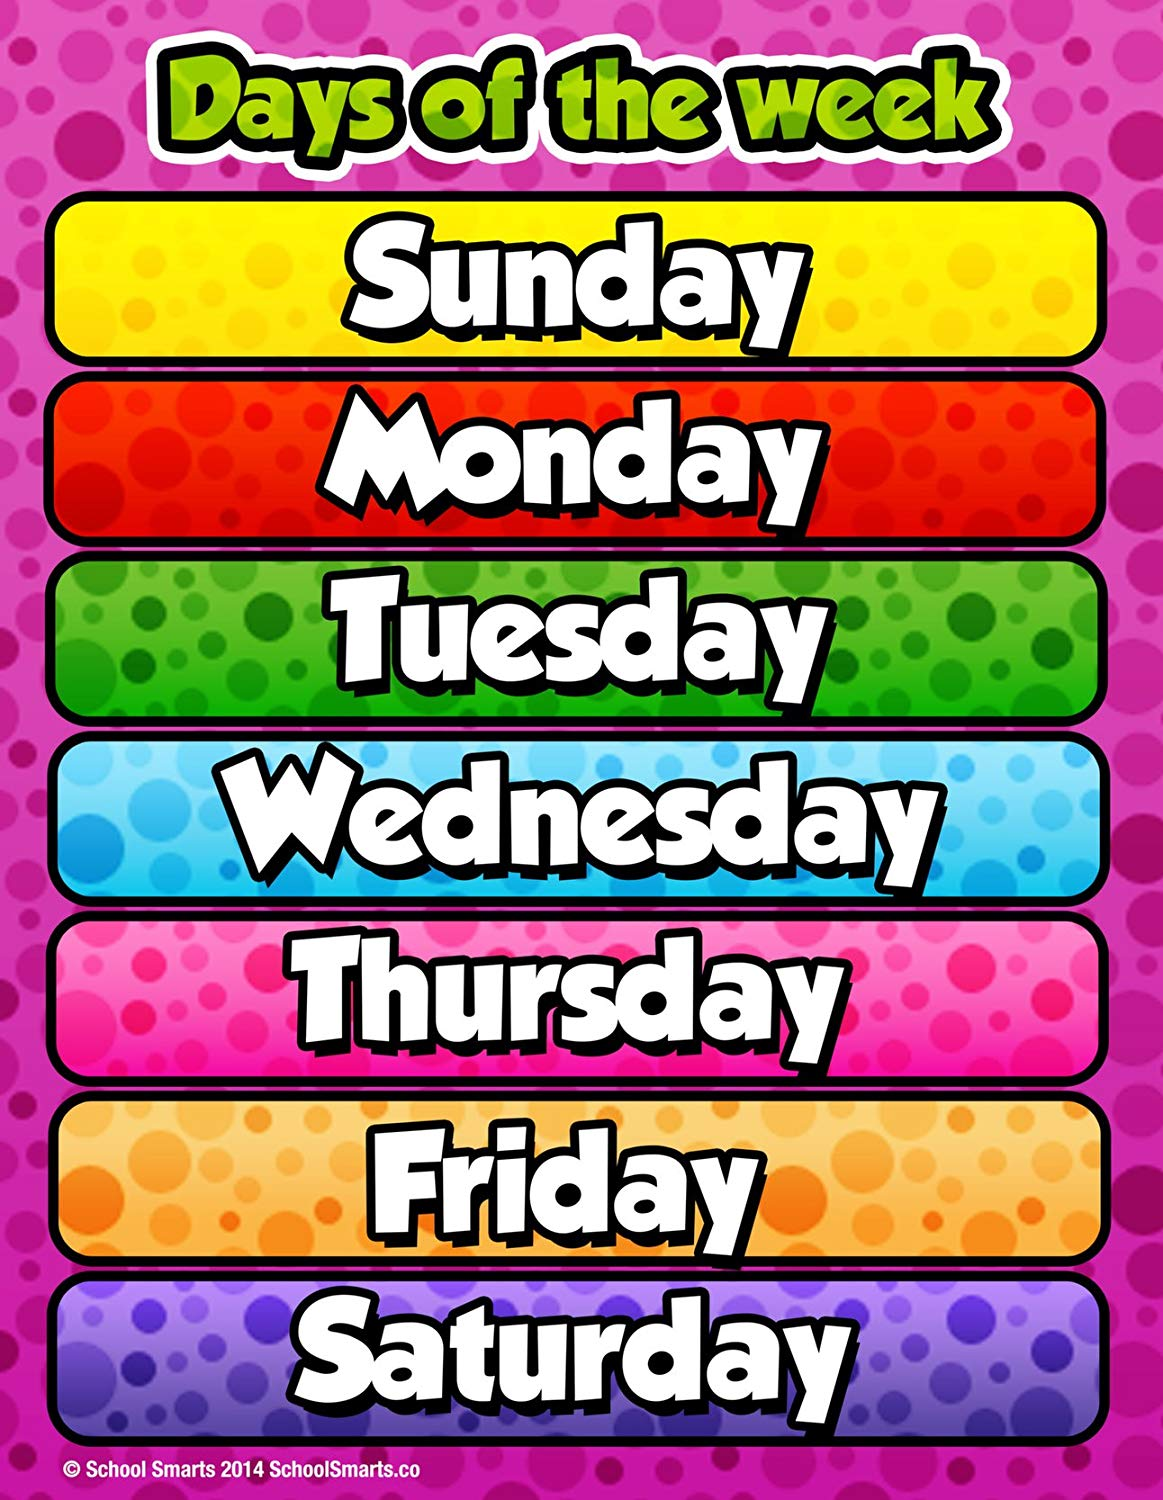 Days of The Week Chart by School Smarts Fully Laminated,Durable Material  Rolled and Sealed in Plastic Poster Sleeve for Protection. Discounts are in.